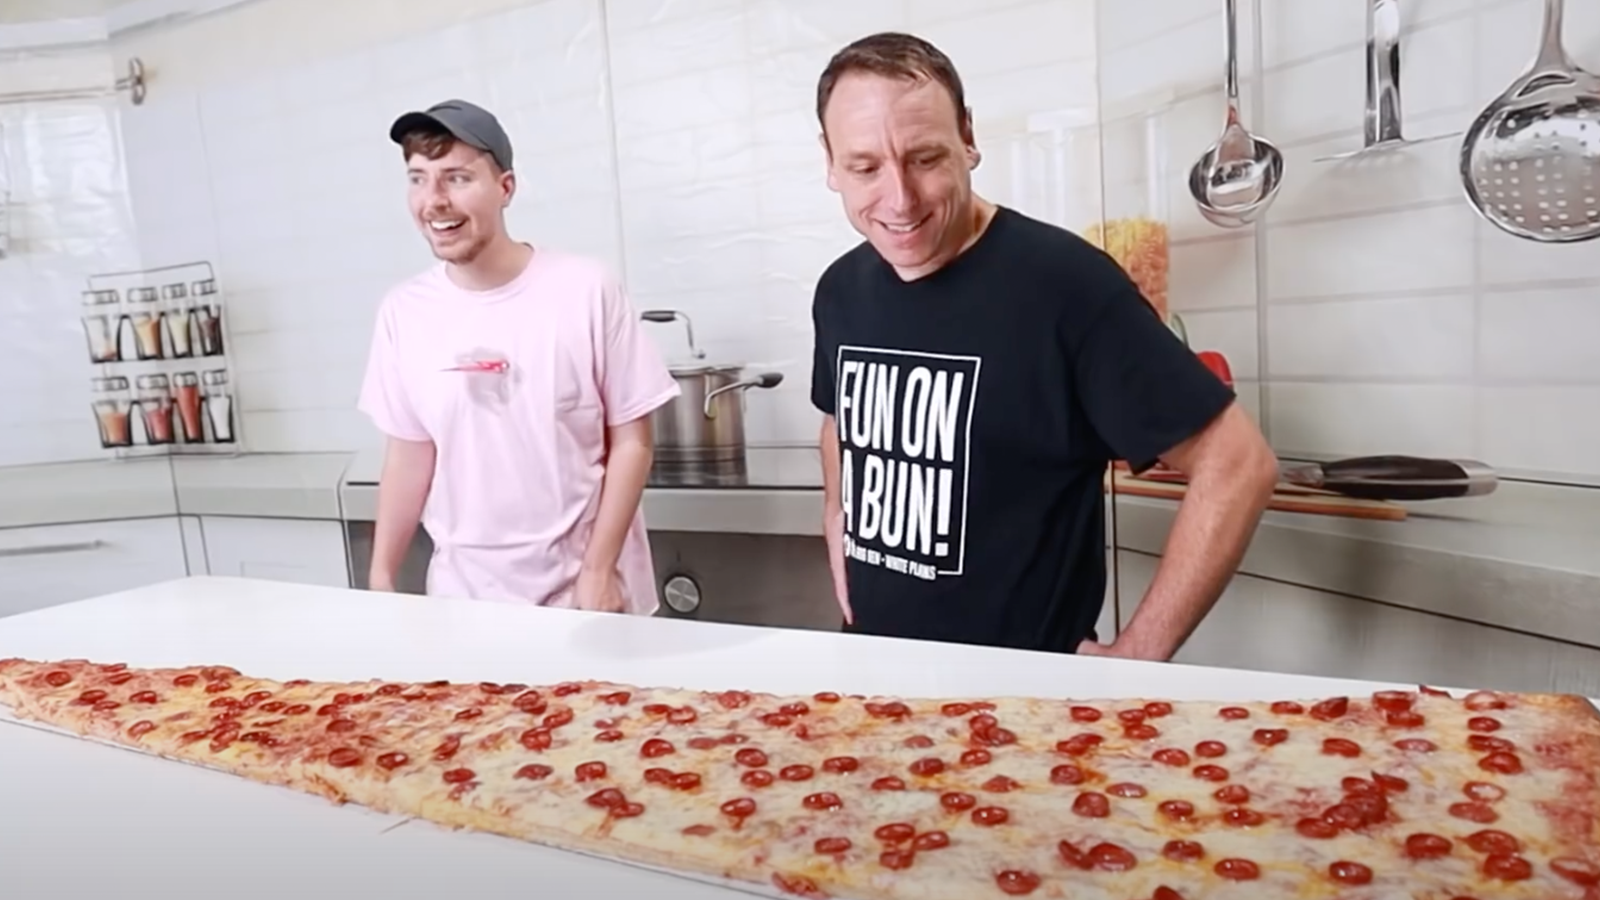 Joey Chestnut and Mr Beast, world's largest pizza slice